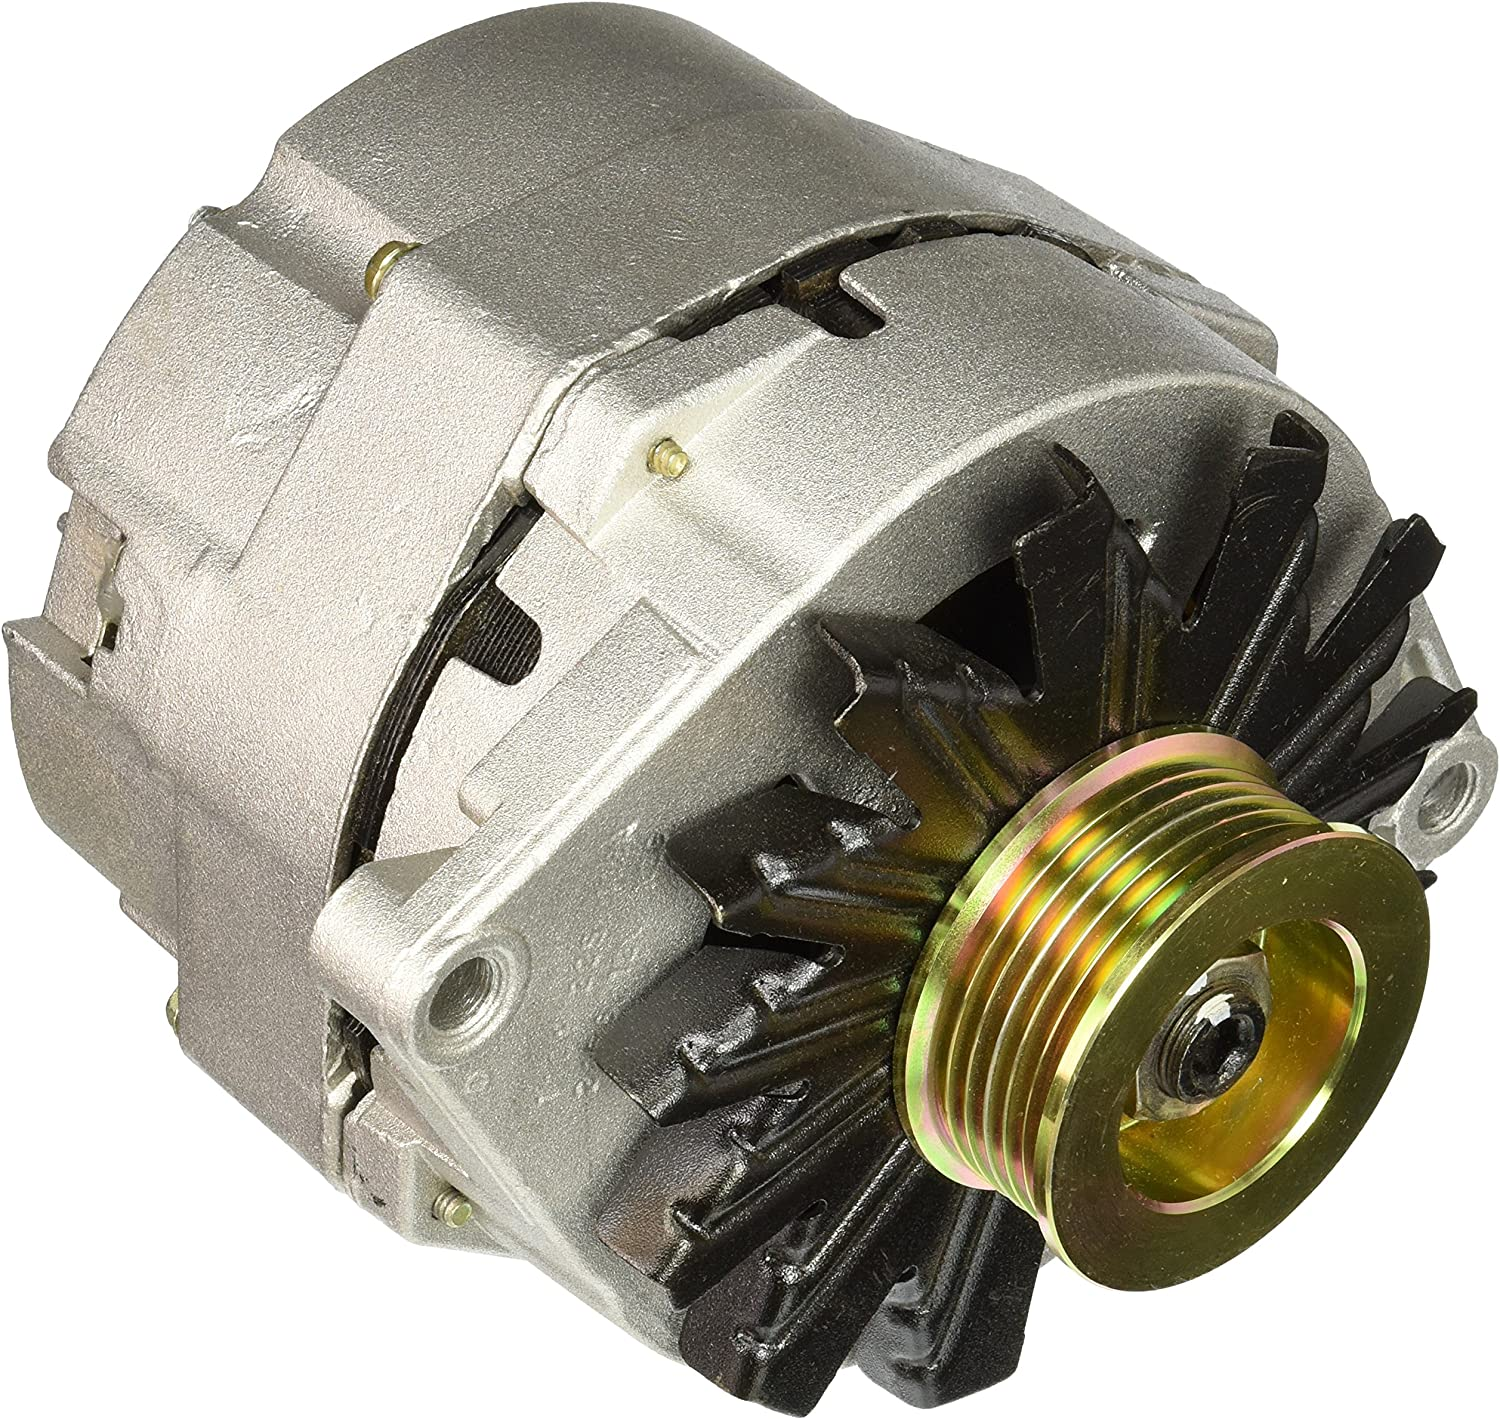 BBB Industries 7288-12 Alternator Cheap bargain Limited time for free shipping